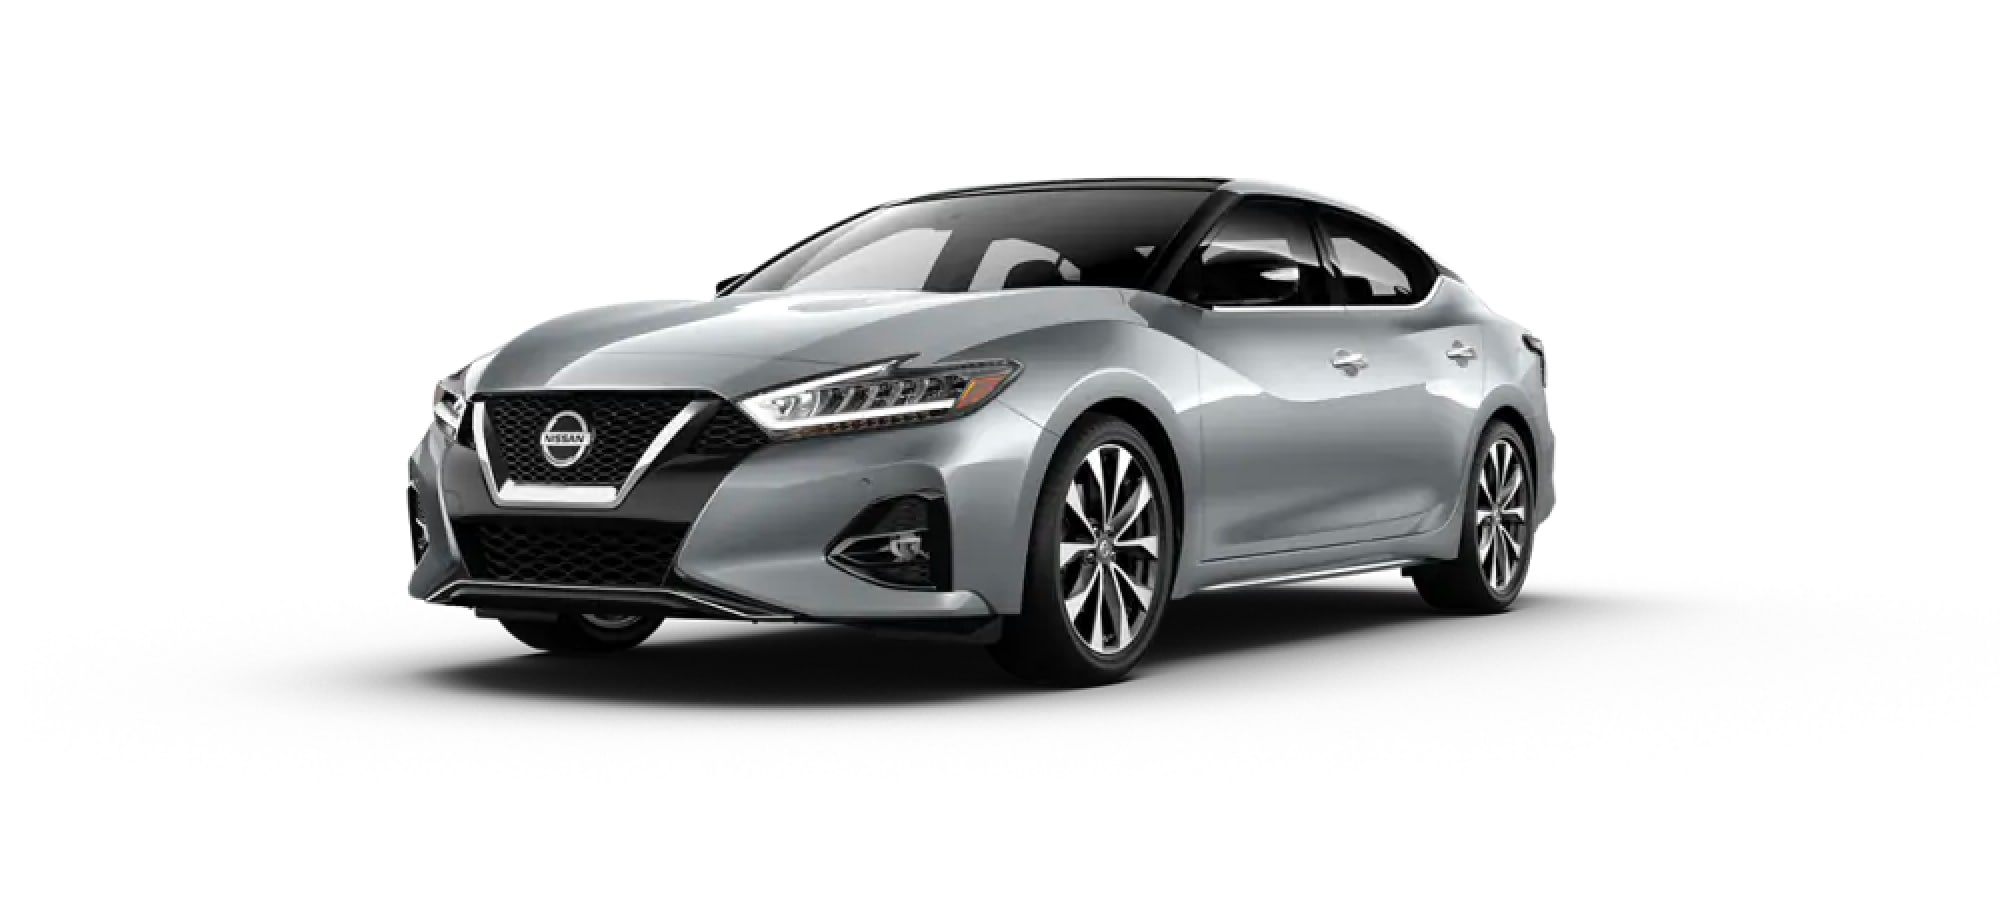 2020 Nissan Maxima in Brilliant Silver Metallic